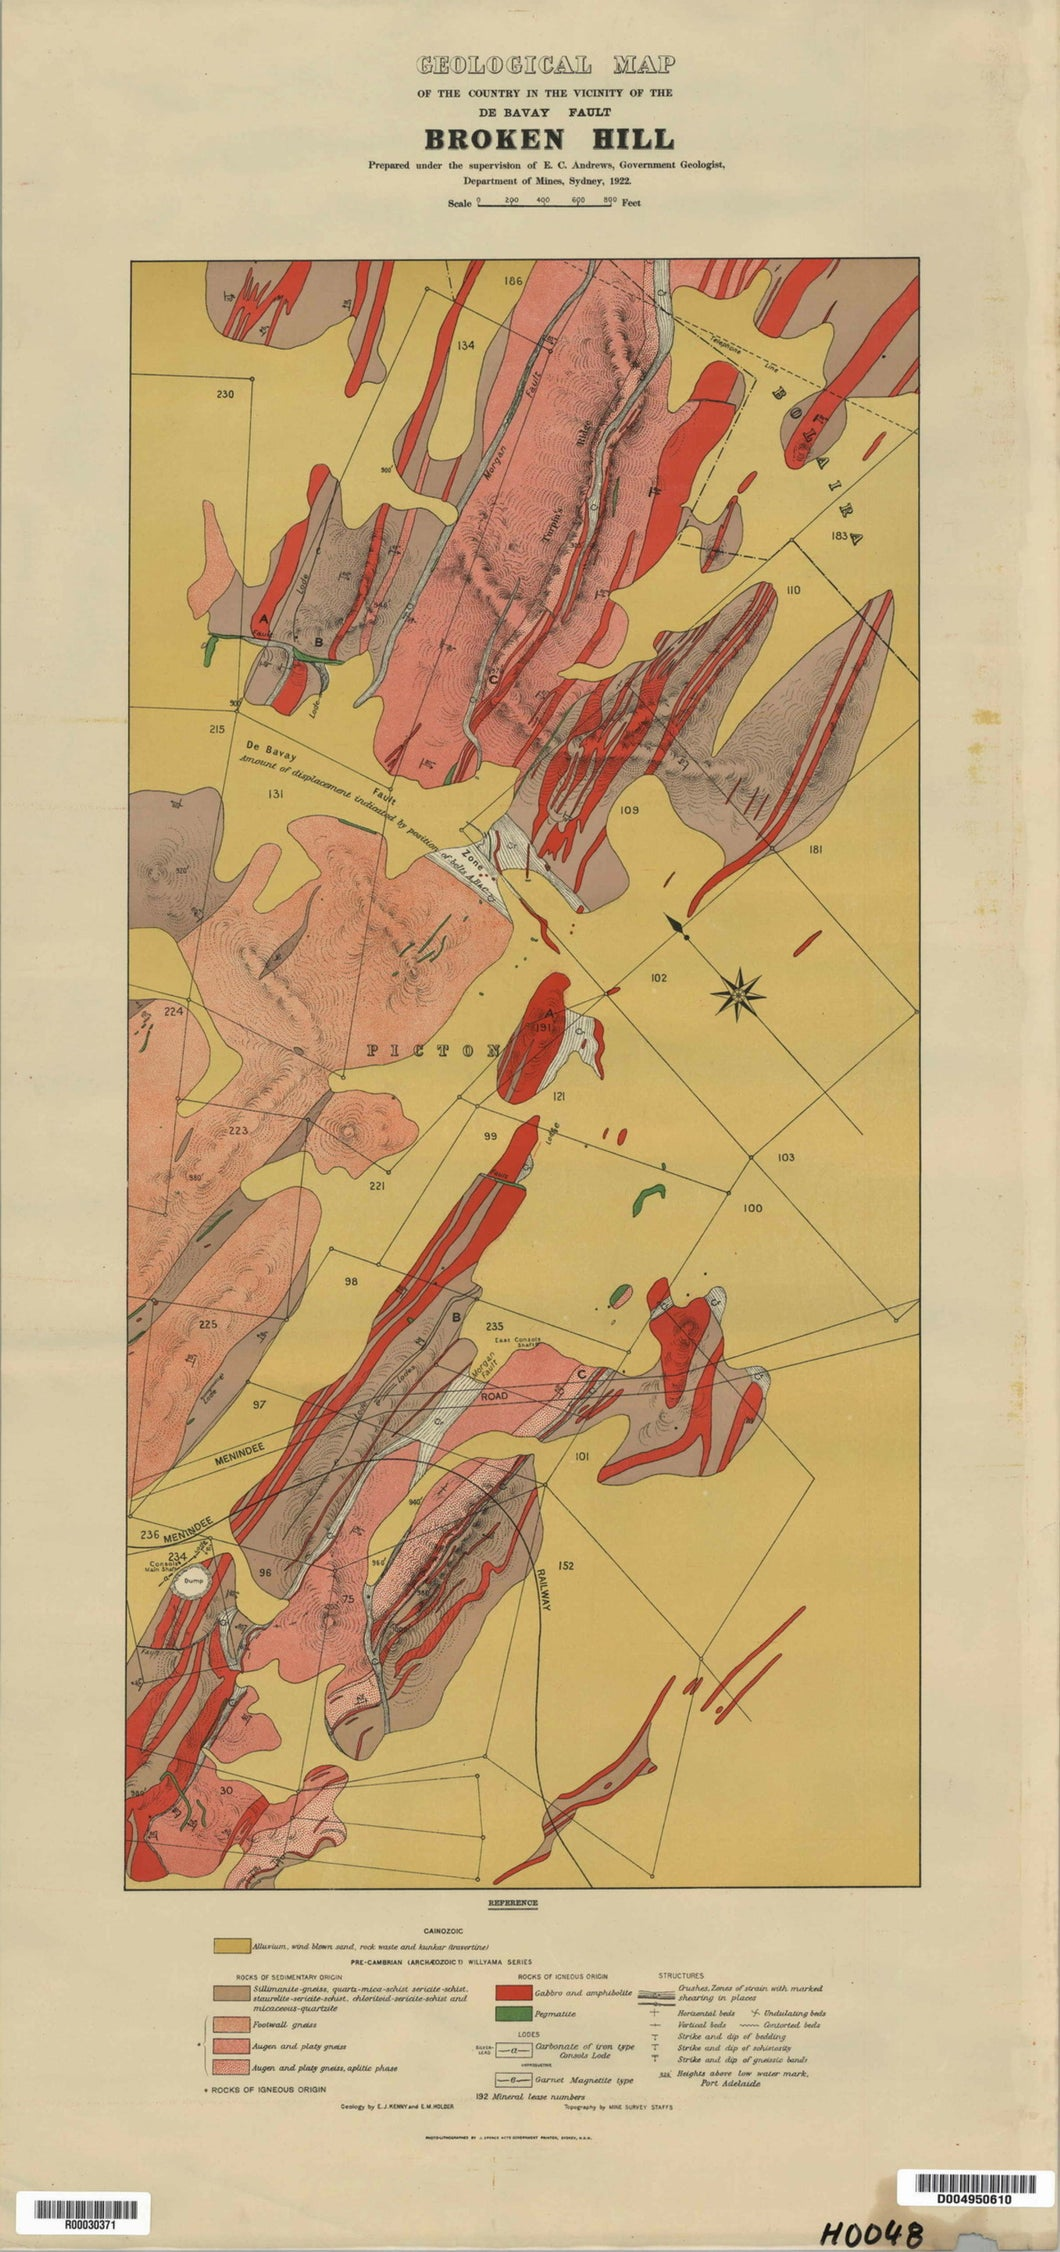 Image of Geological Map of De Bavay Fault area, Broken Hill   1922  map